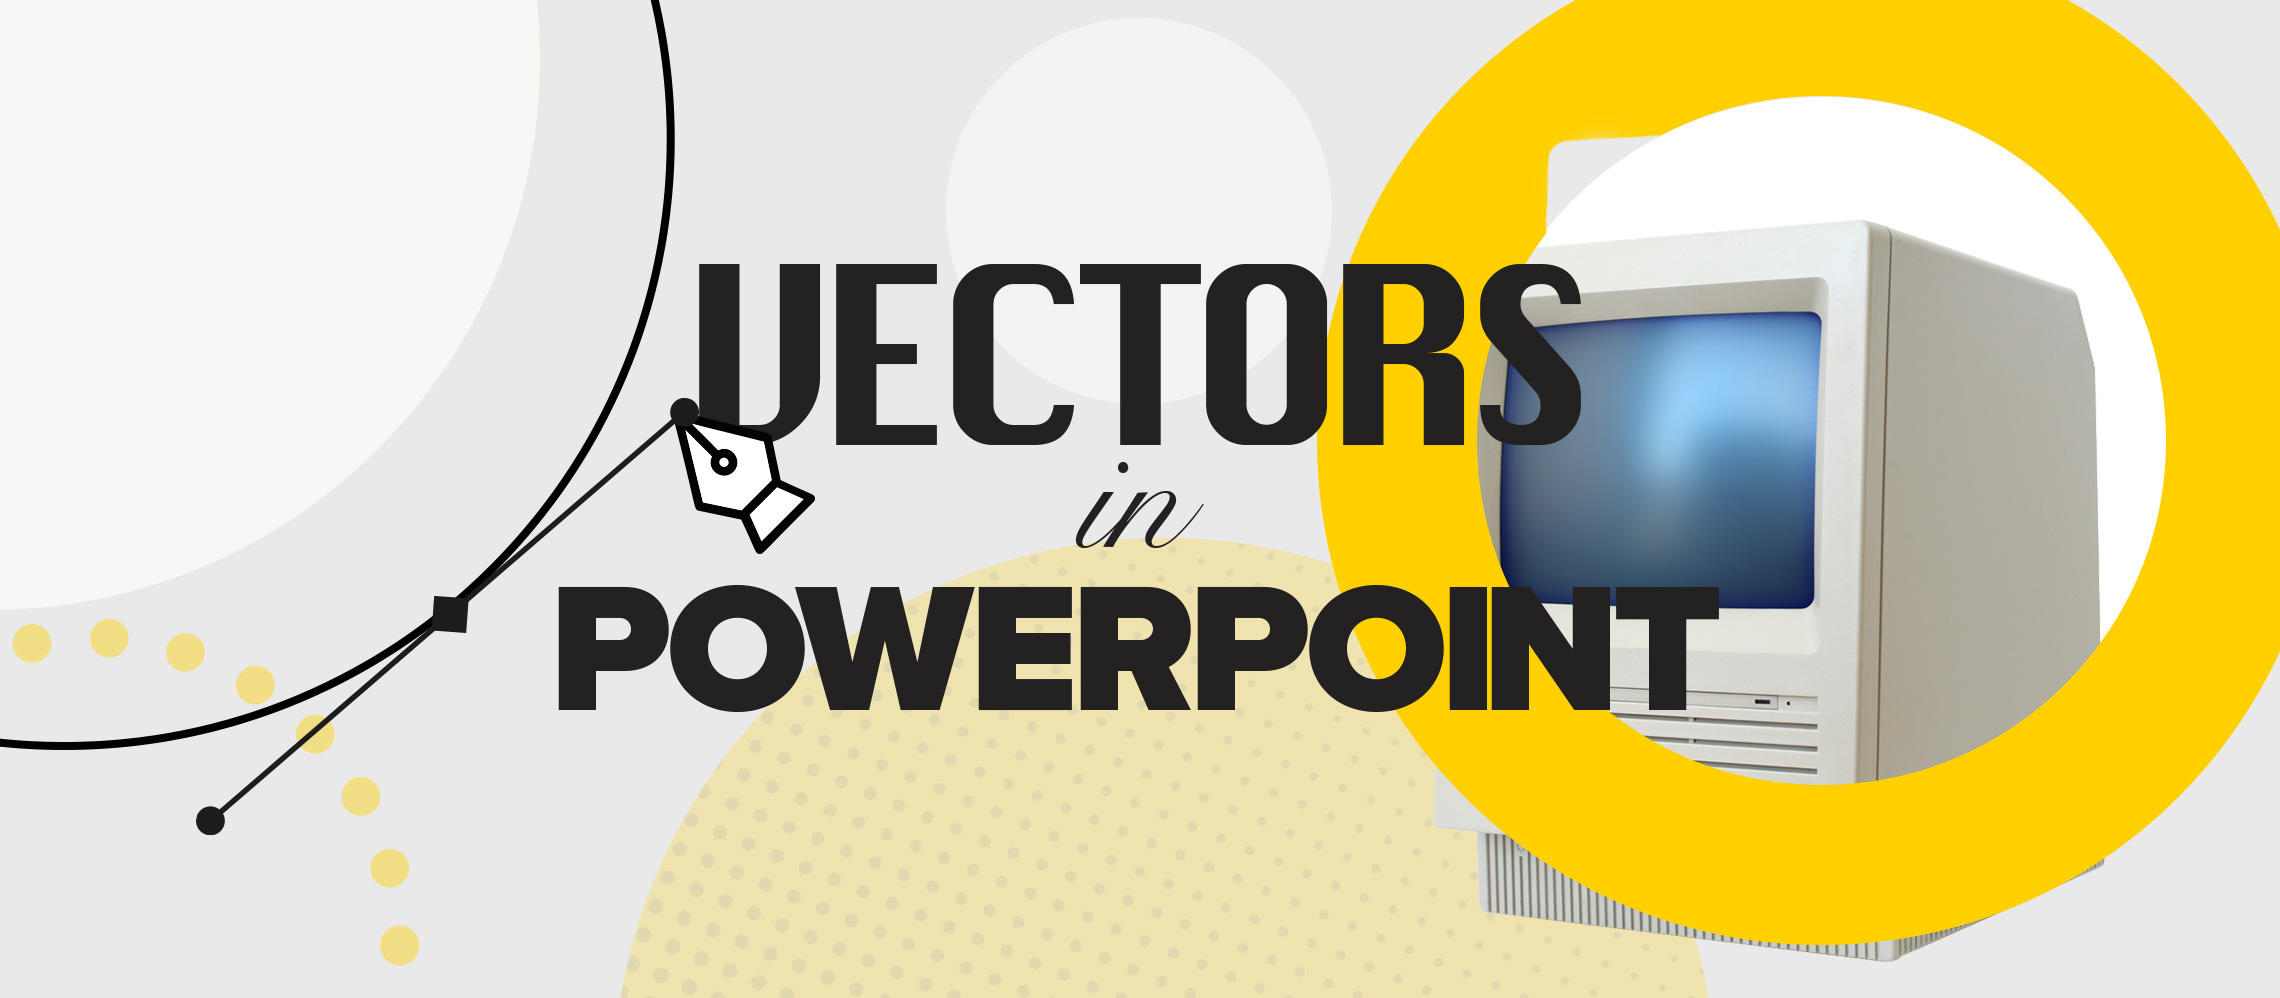 How To Use Vectors In Powerpoint Svg Emf Eps Files